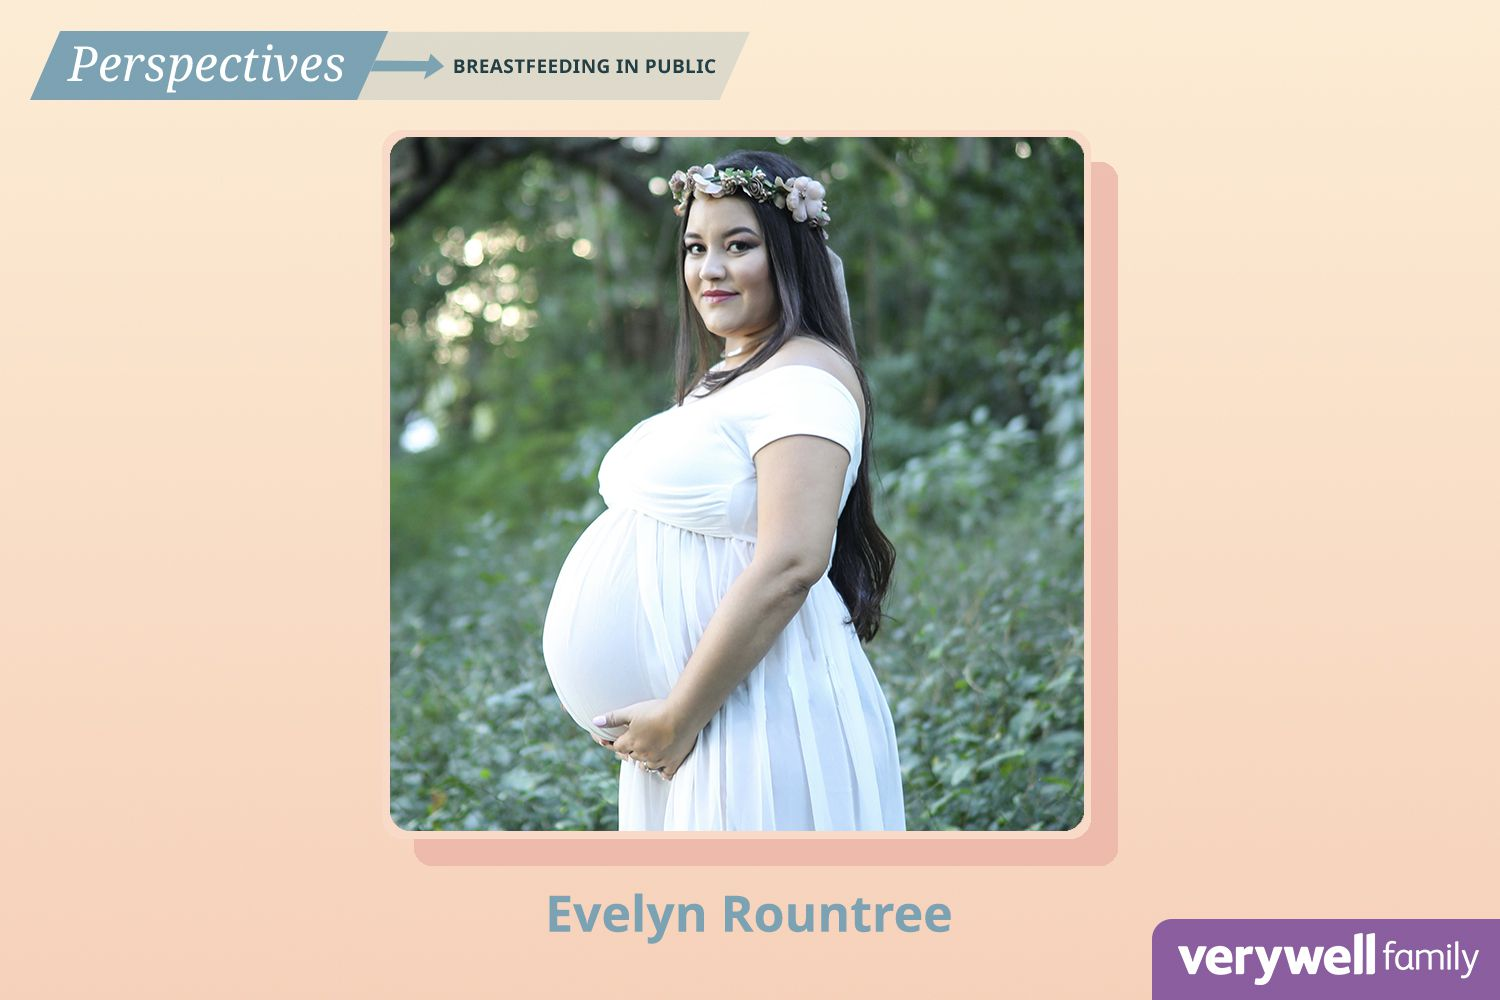 Evelyn Rountree